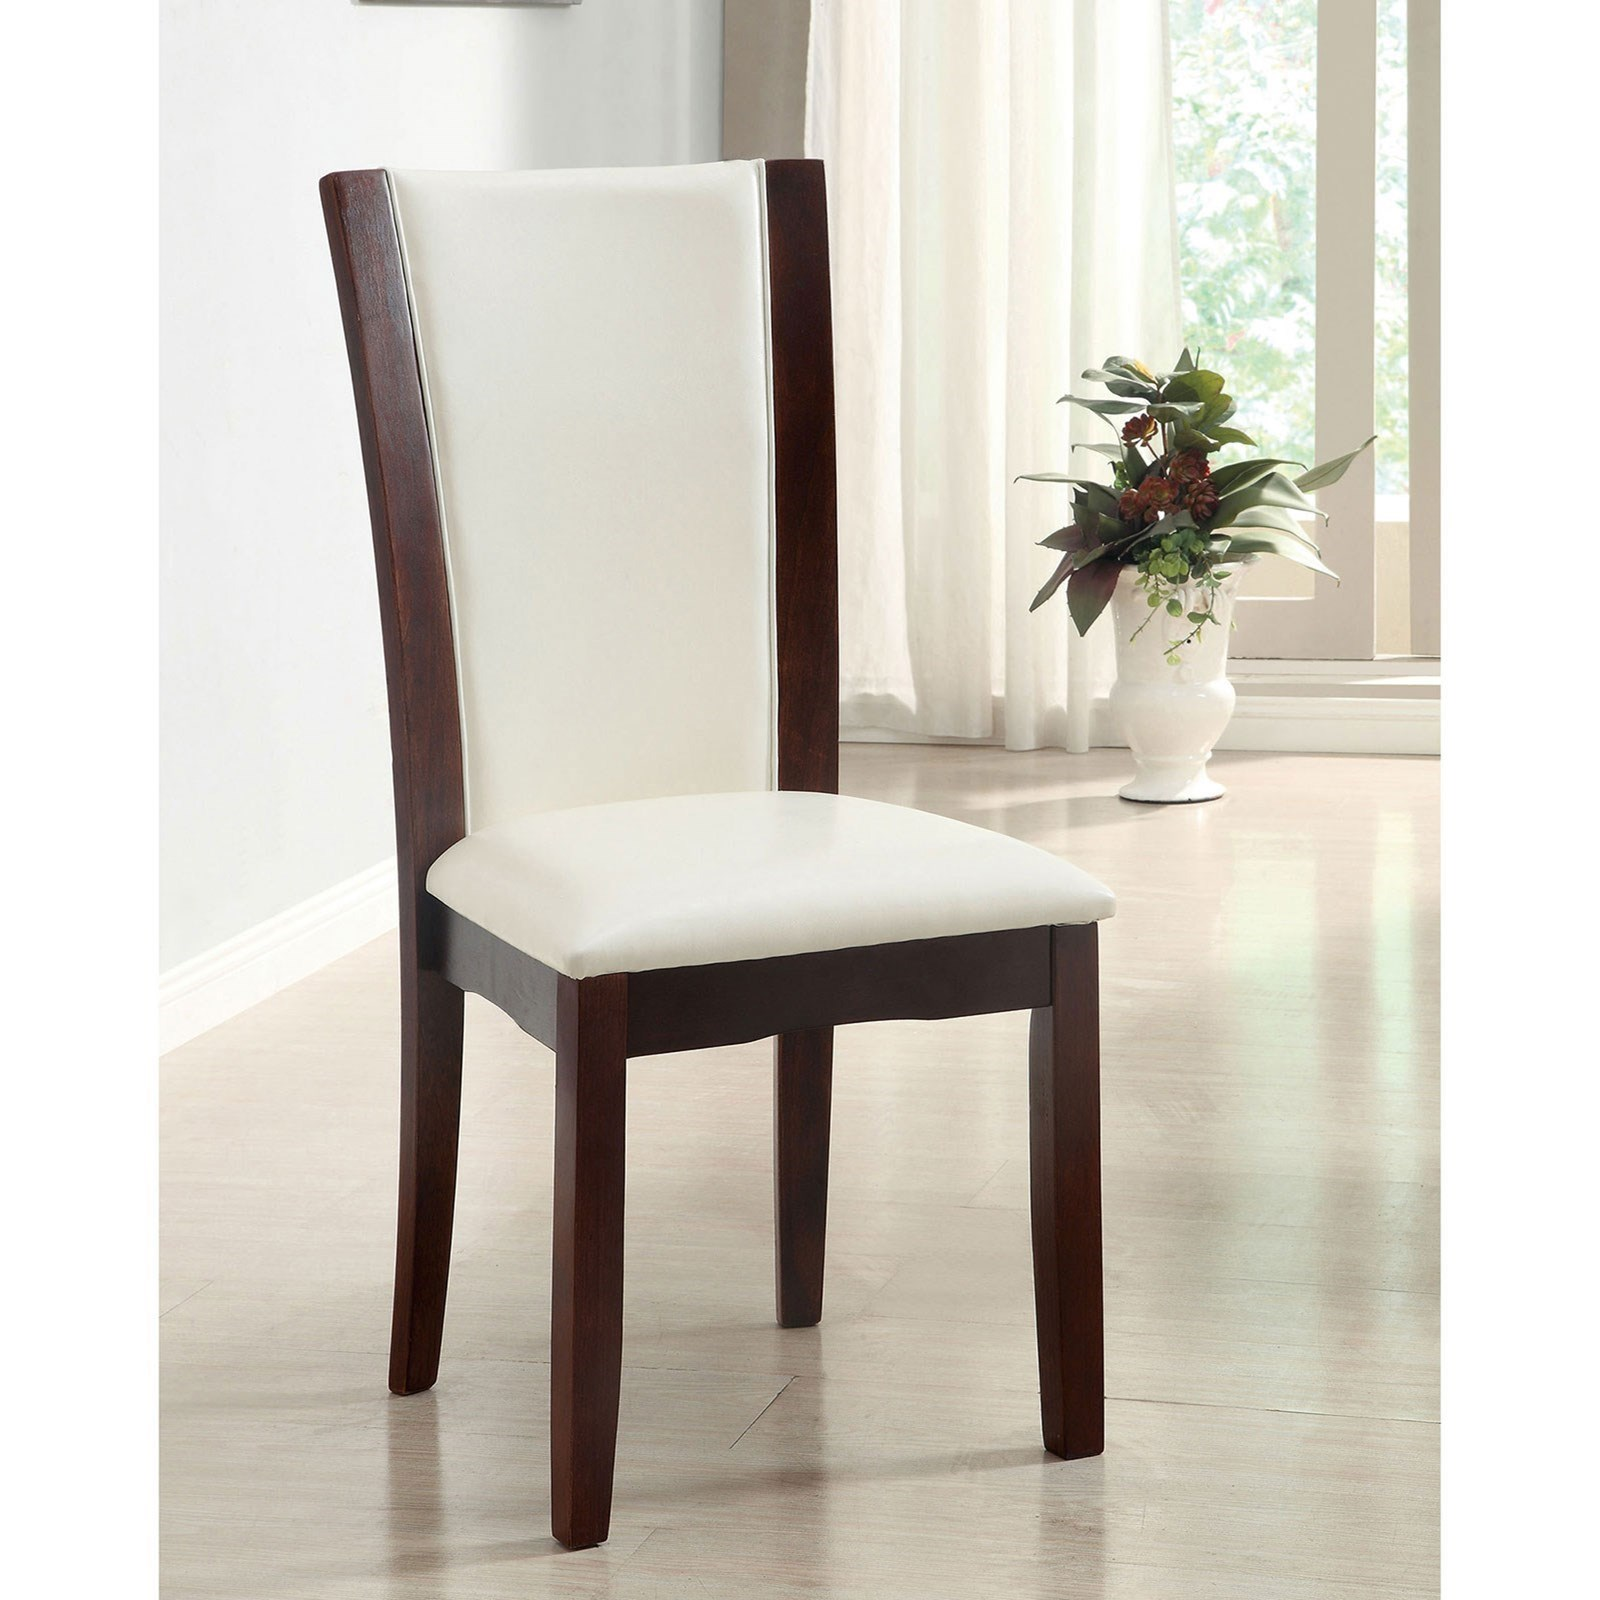 Manhattan I & II Set of 2 Side Chairs - Espresso Finish at Household Furniture